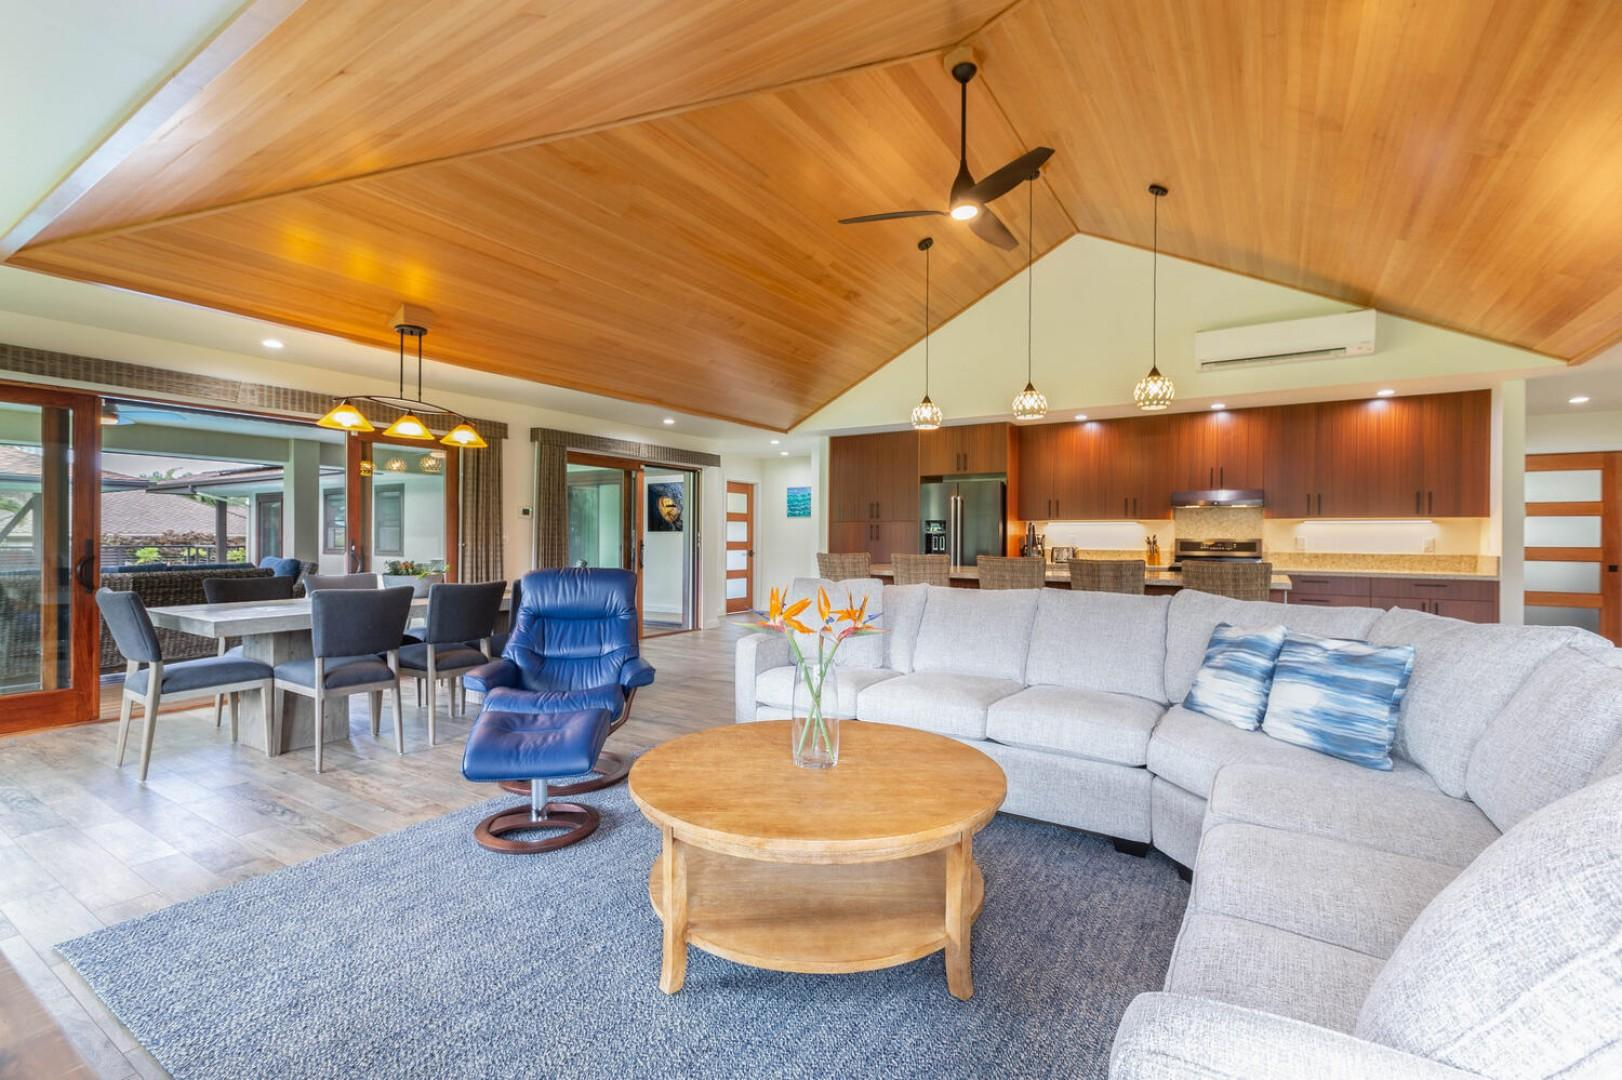 Living area with vaulted ceilings